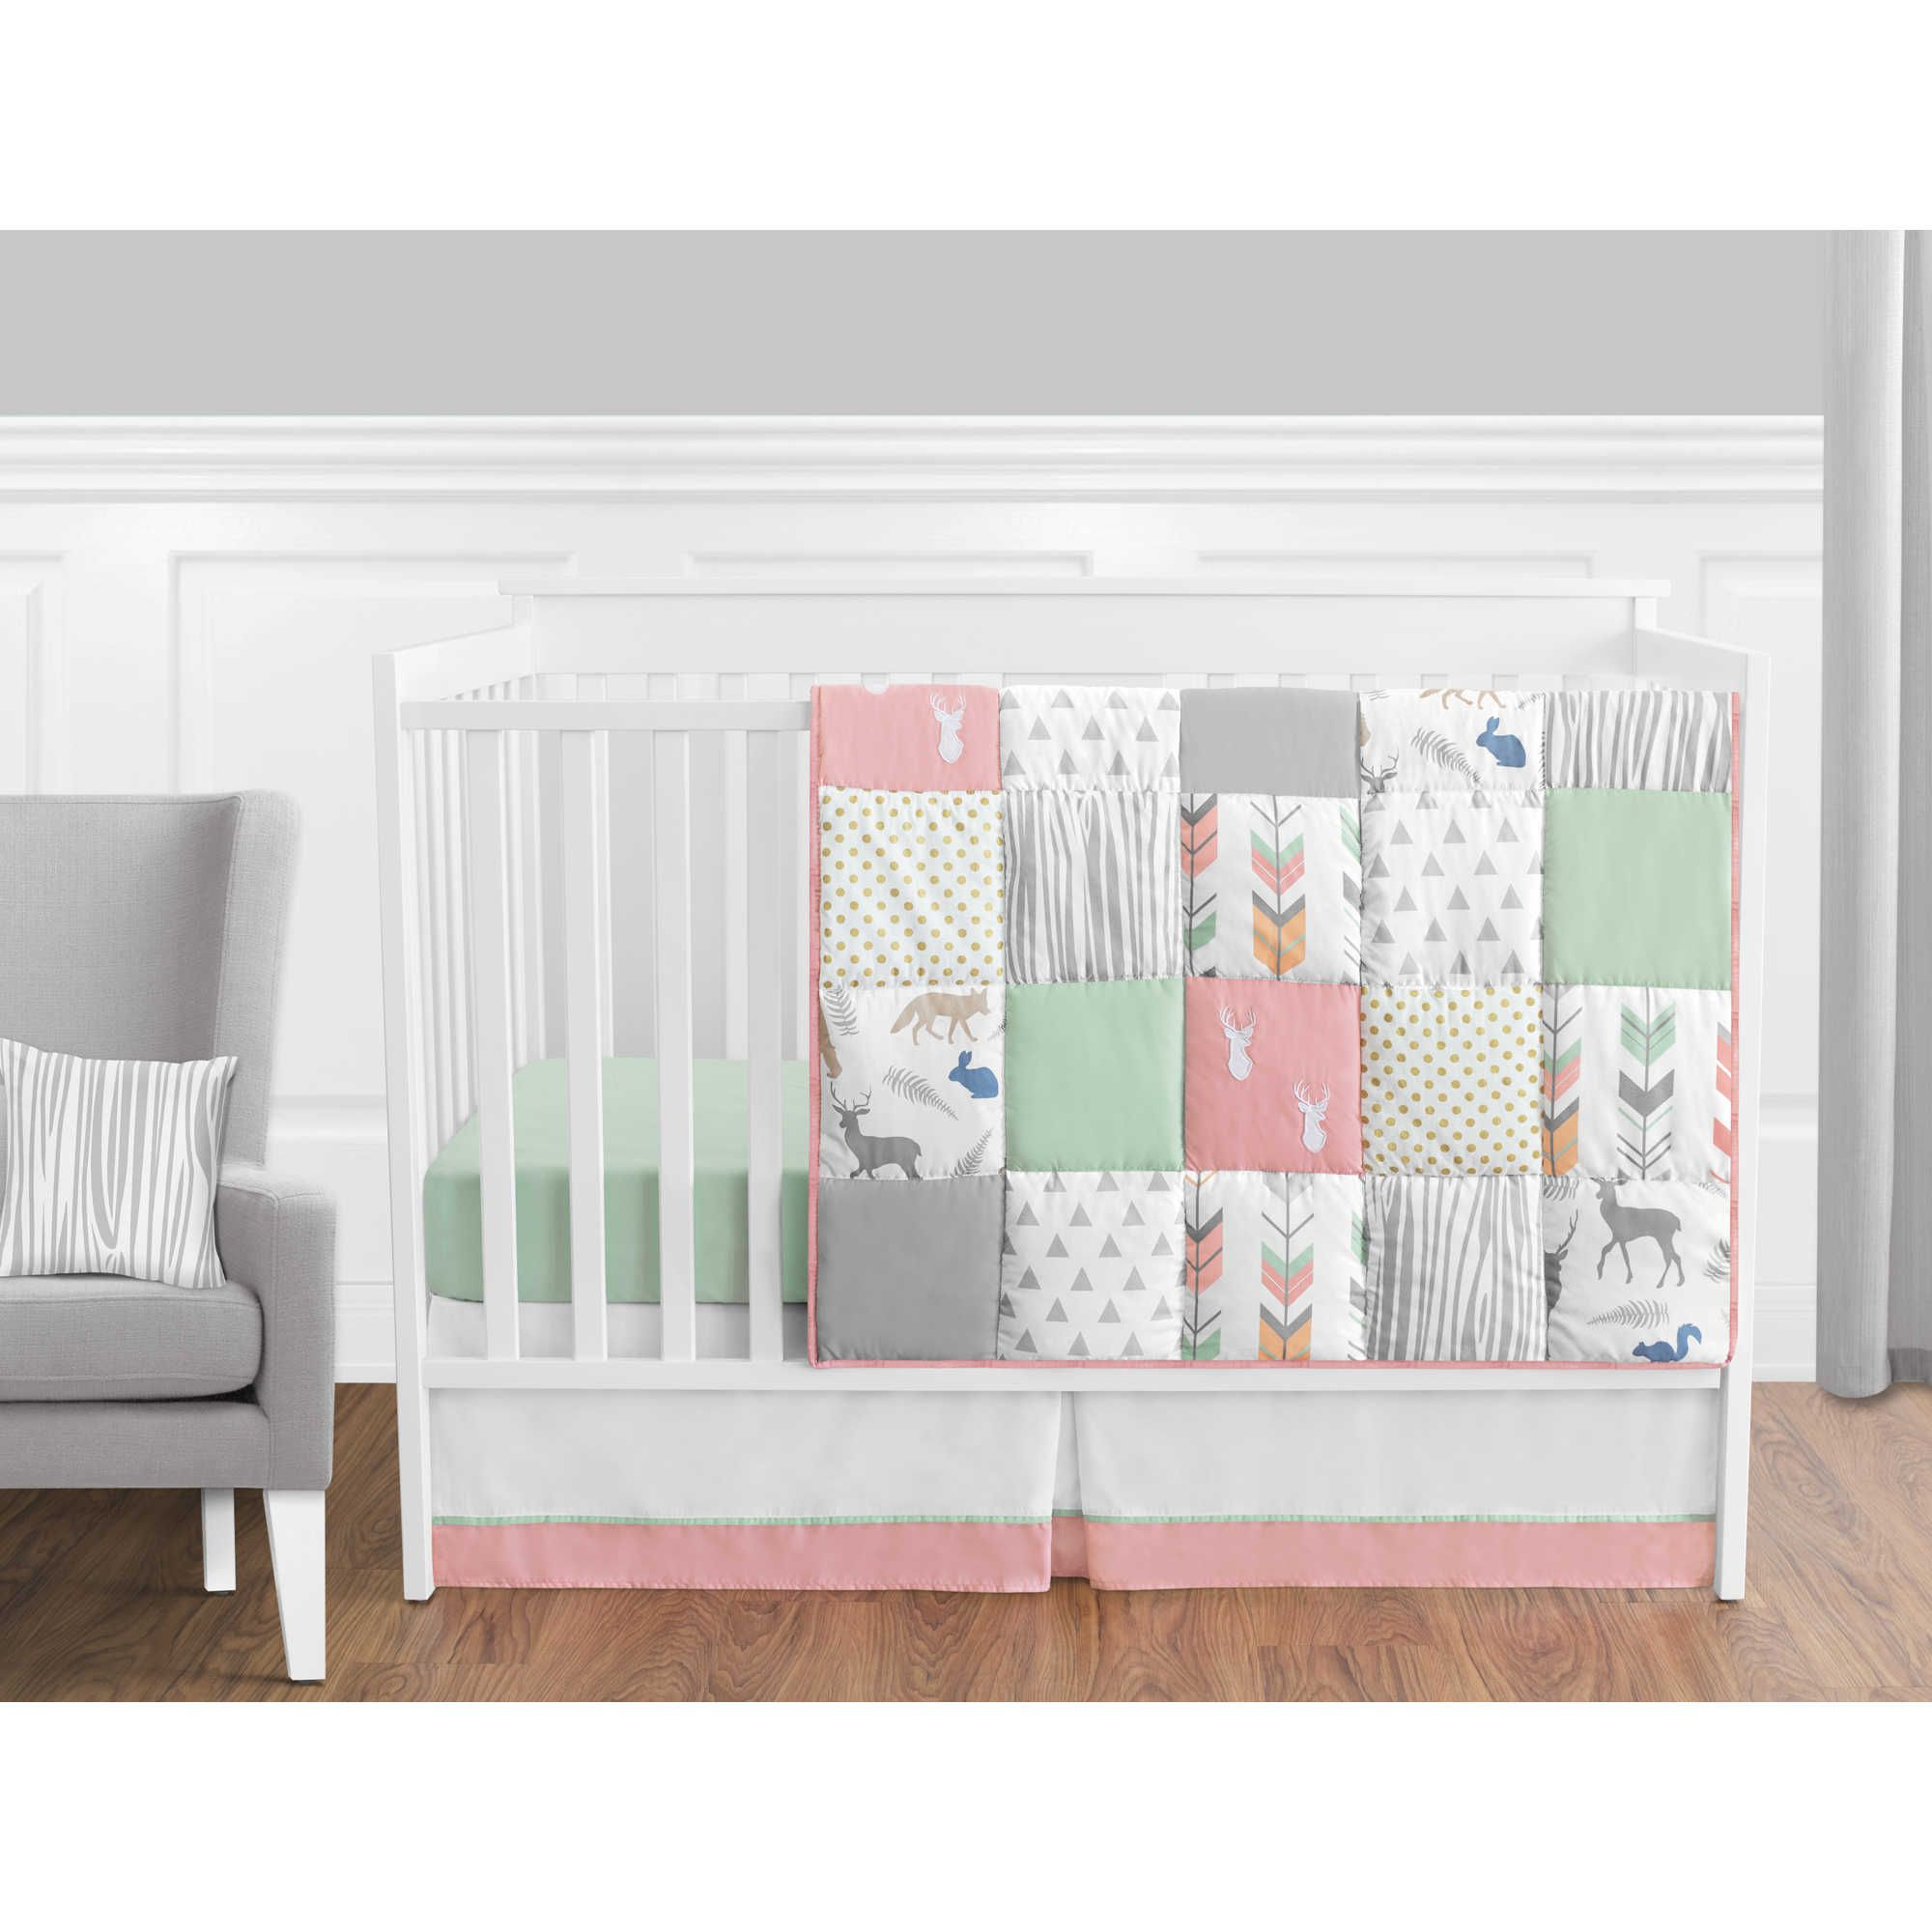 dp cribs designs covers baby for cover sweet crib com wrap teething collection bedding long side rail amazon protector jojo guard blue navy